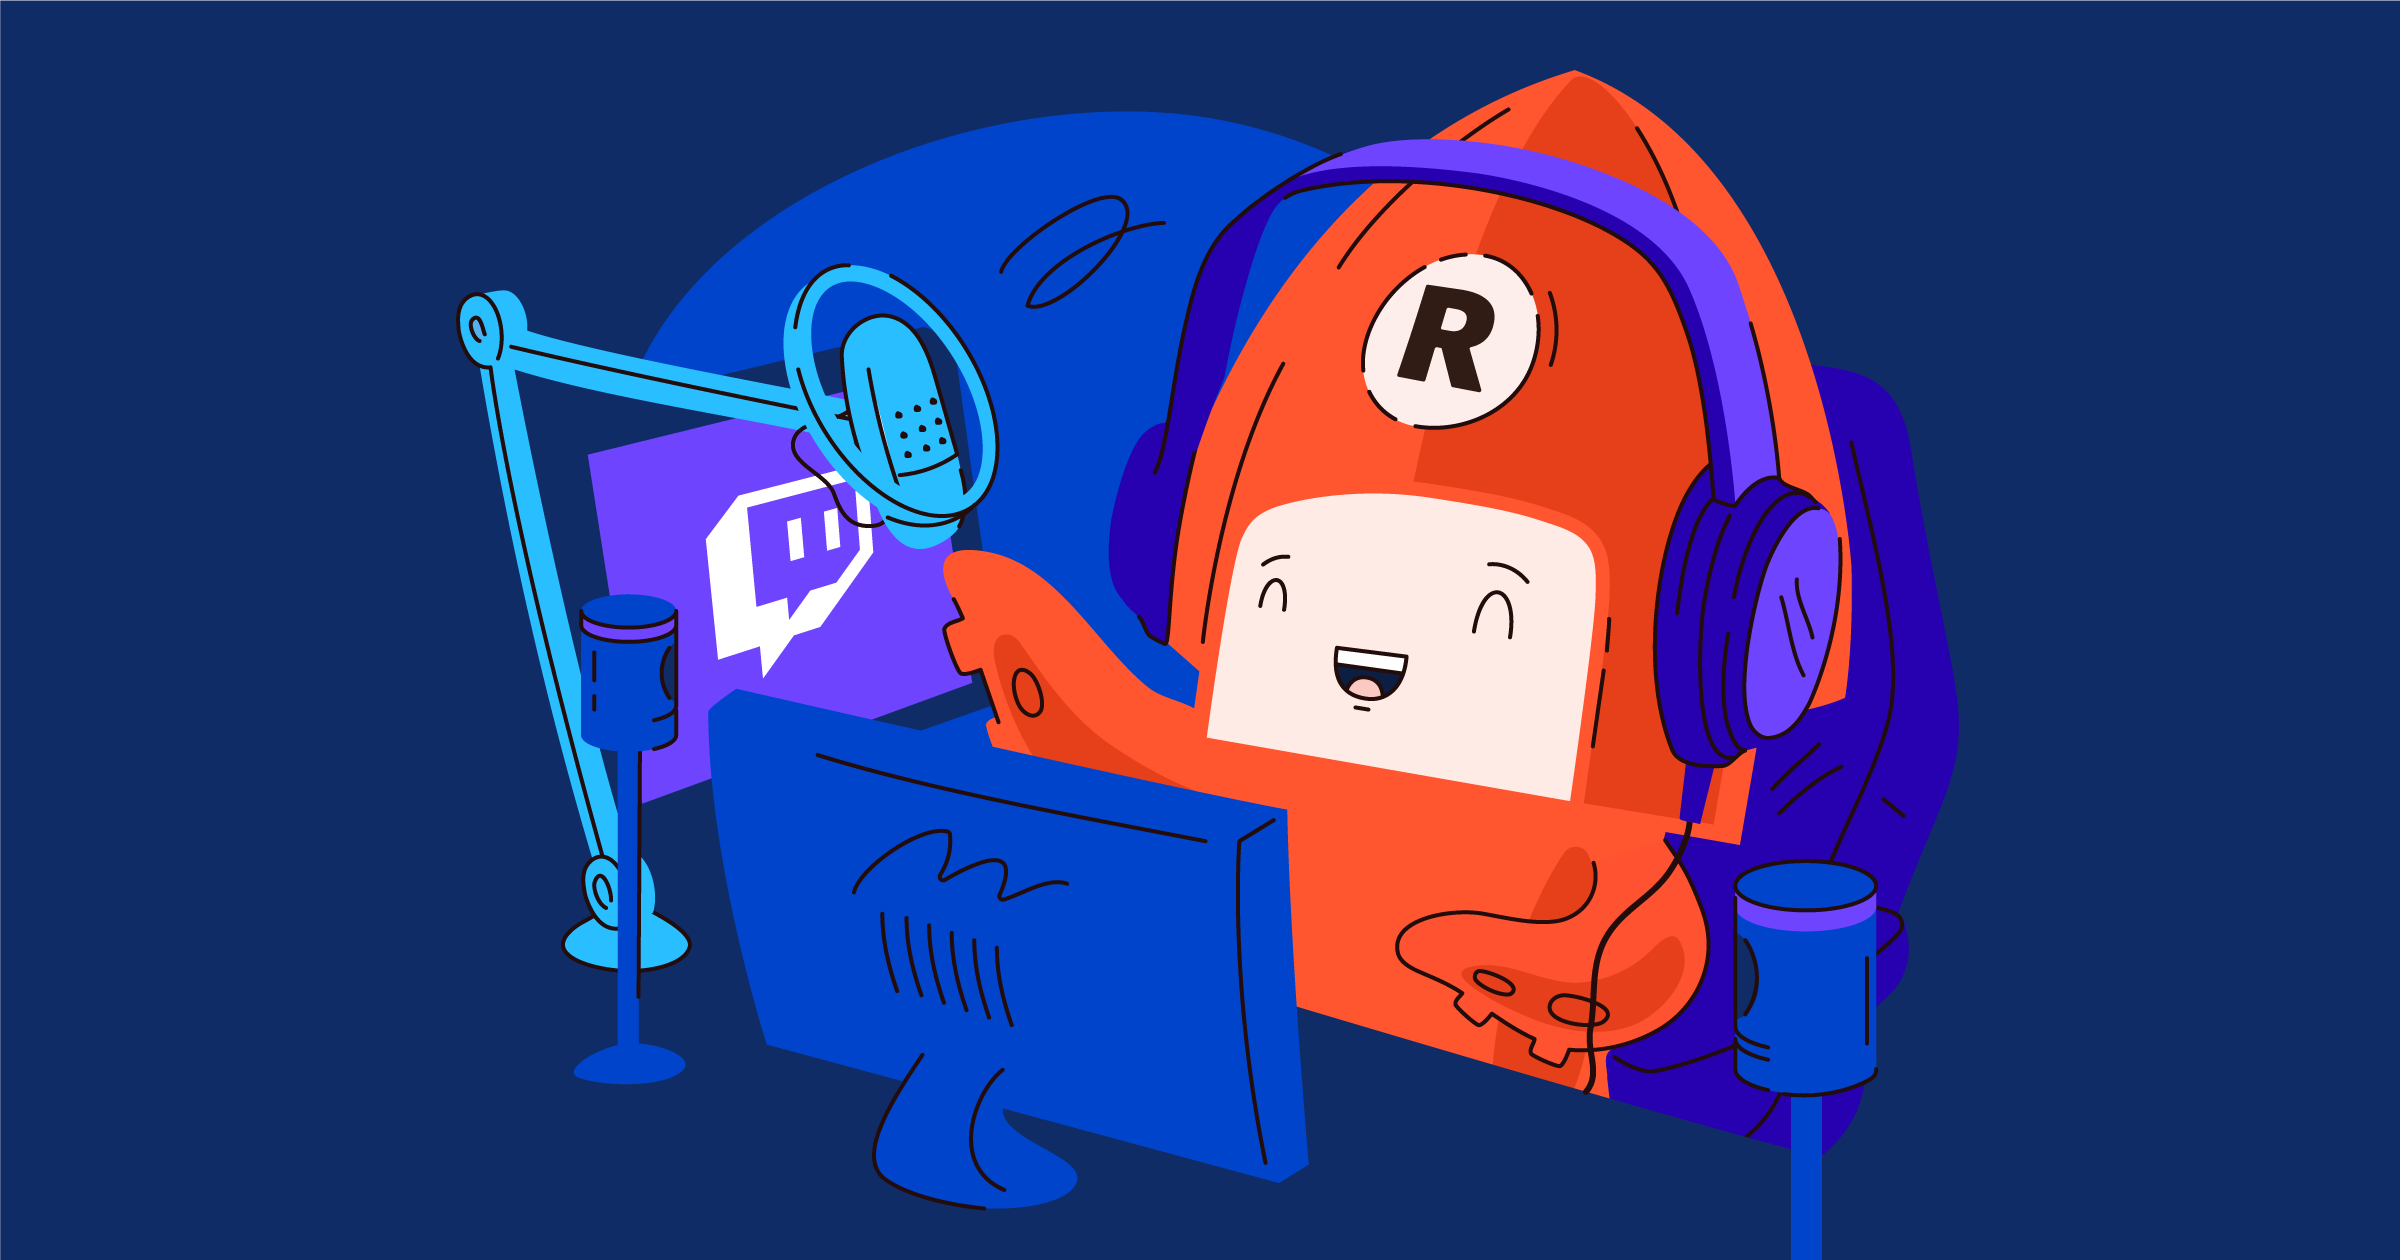 Reuse Twitch streams to live stream on other platforms